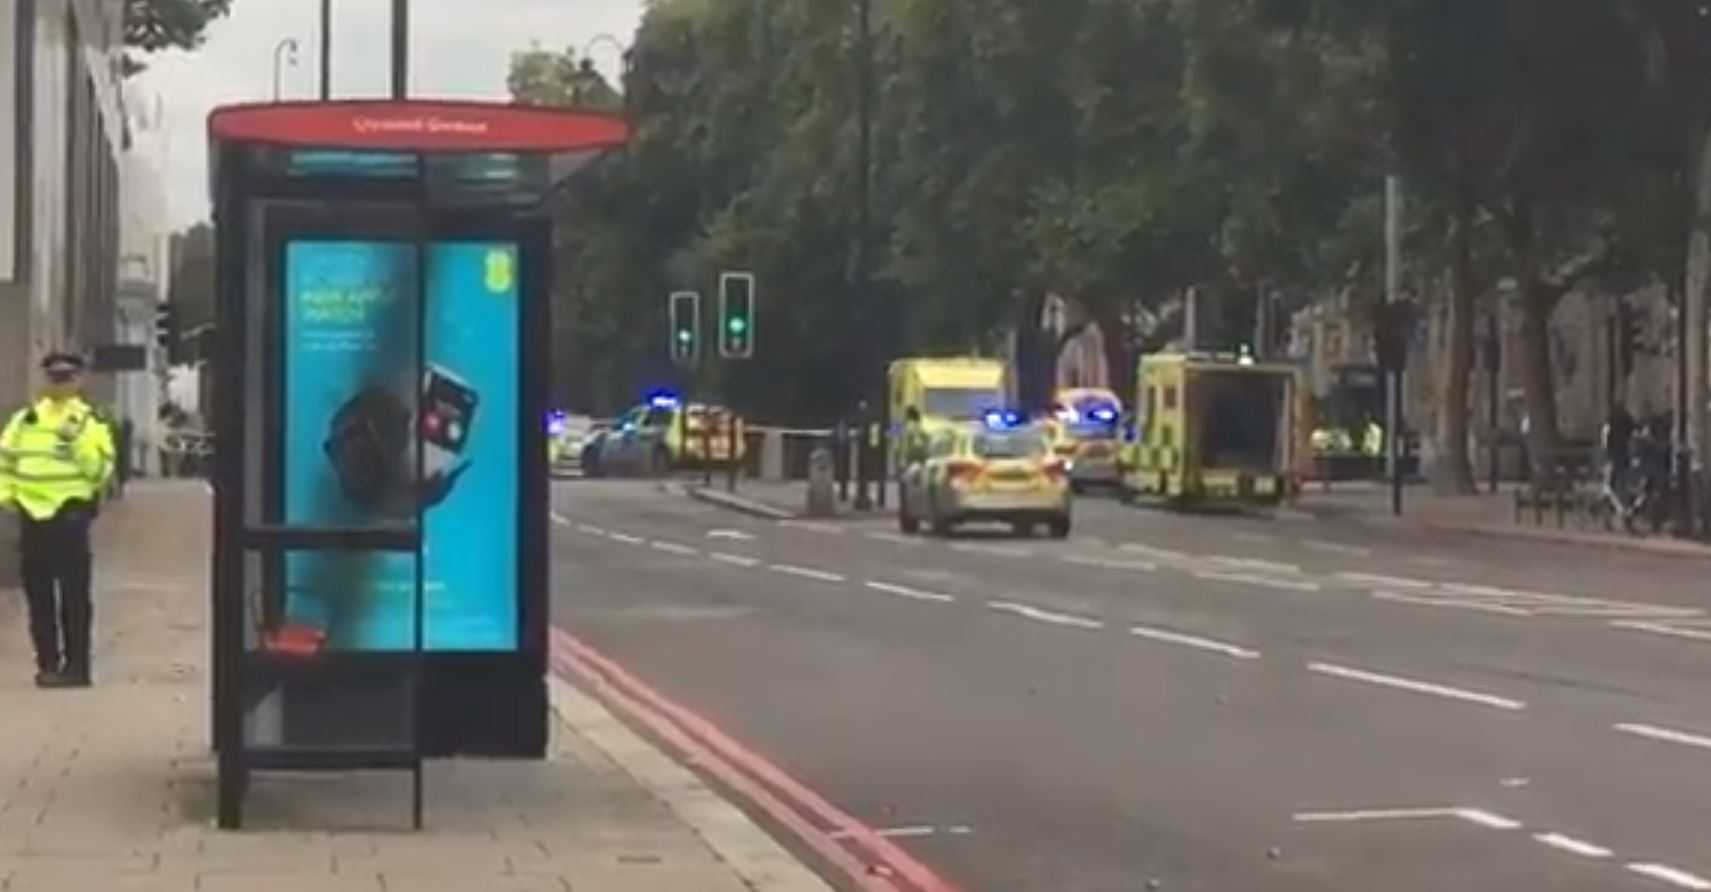 Vehicle hits pedestrians near London museum